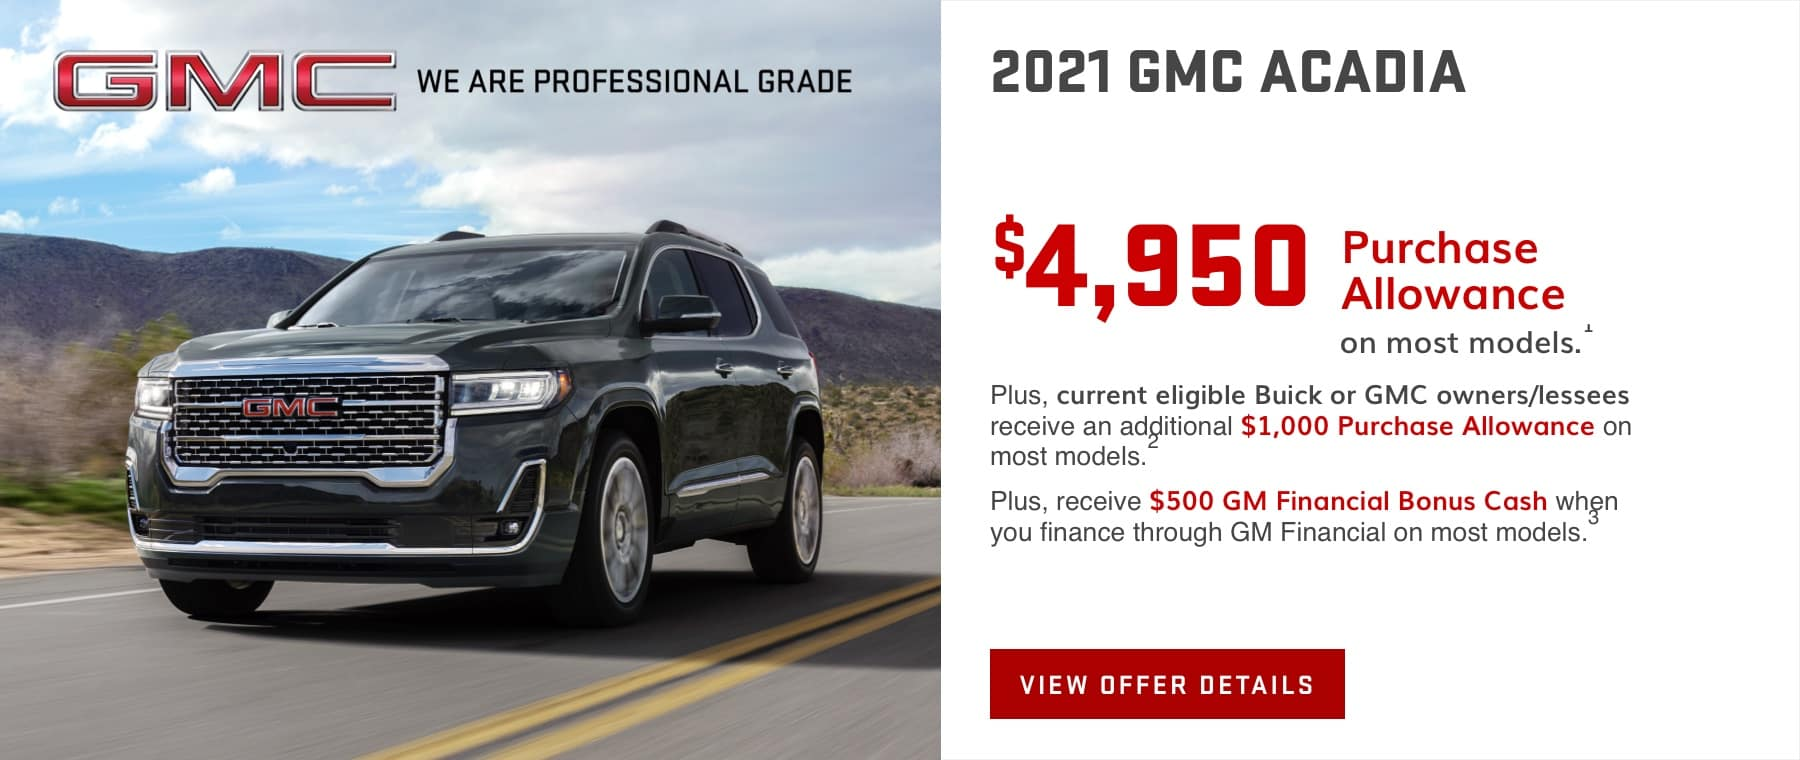 $4,950 Purchase Allowance on most models.1 Plus, current eligible Buick or GMC owners/lessees receive an additional $1,000 Purchase Allowance on most models.2 Plus, receive $500 GM Financial Bonus Cash when you finance through GM Financial on most models.3